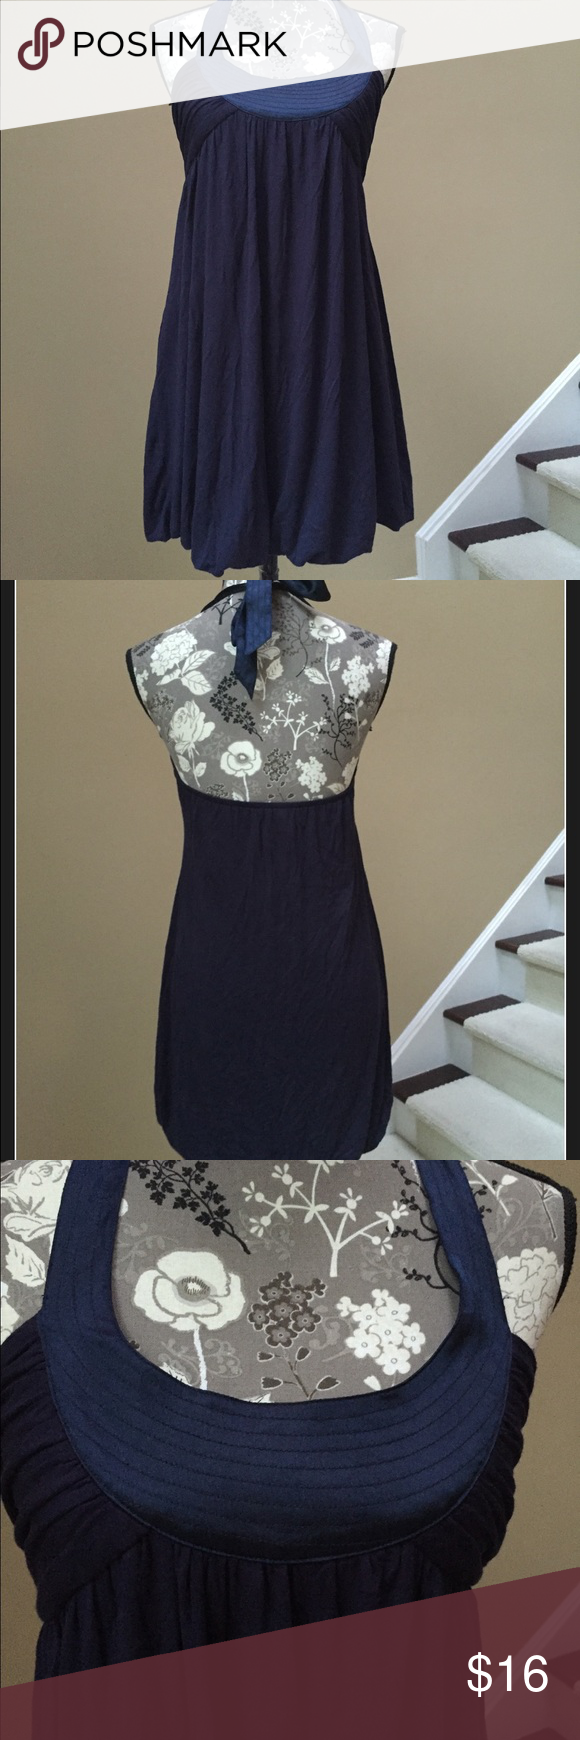 Rose bud brand navy halter dress rose buds rose and navy